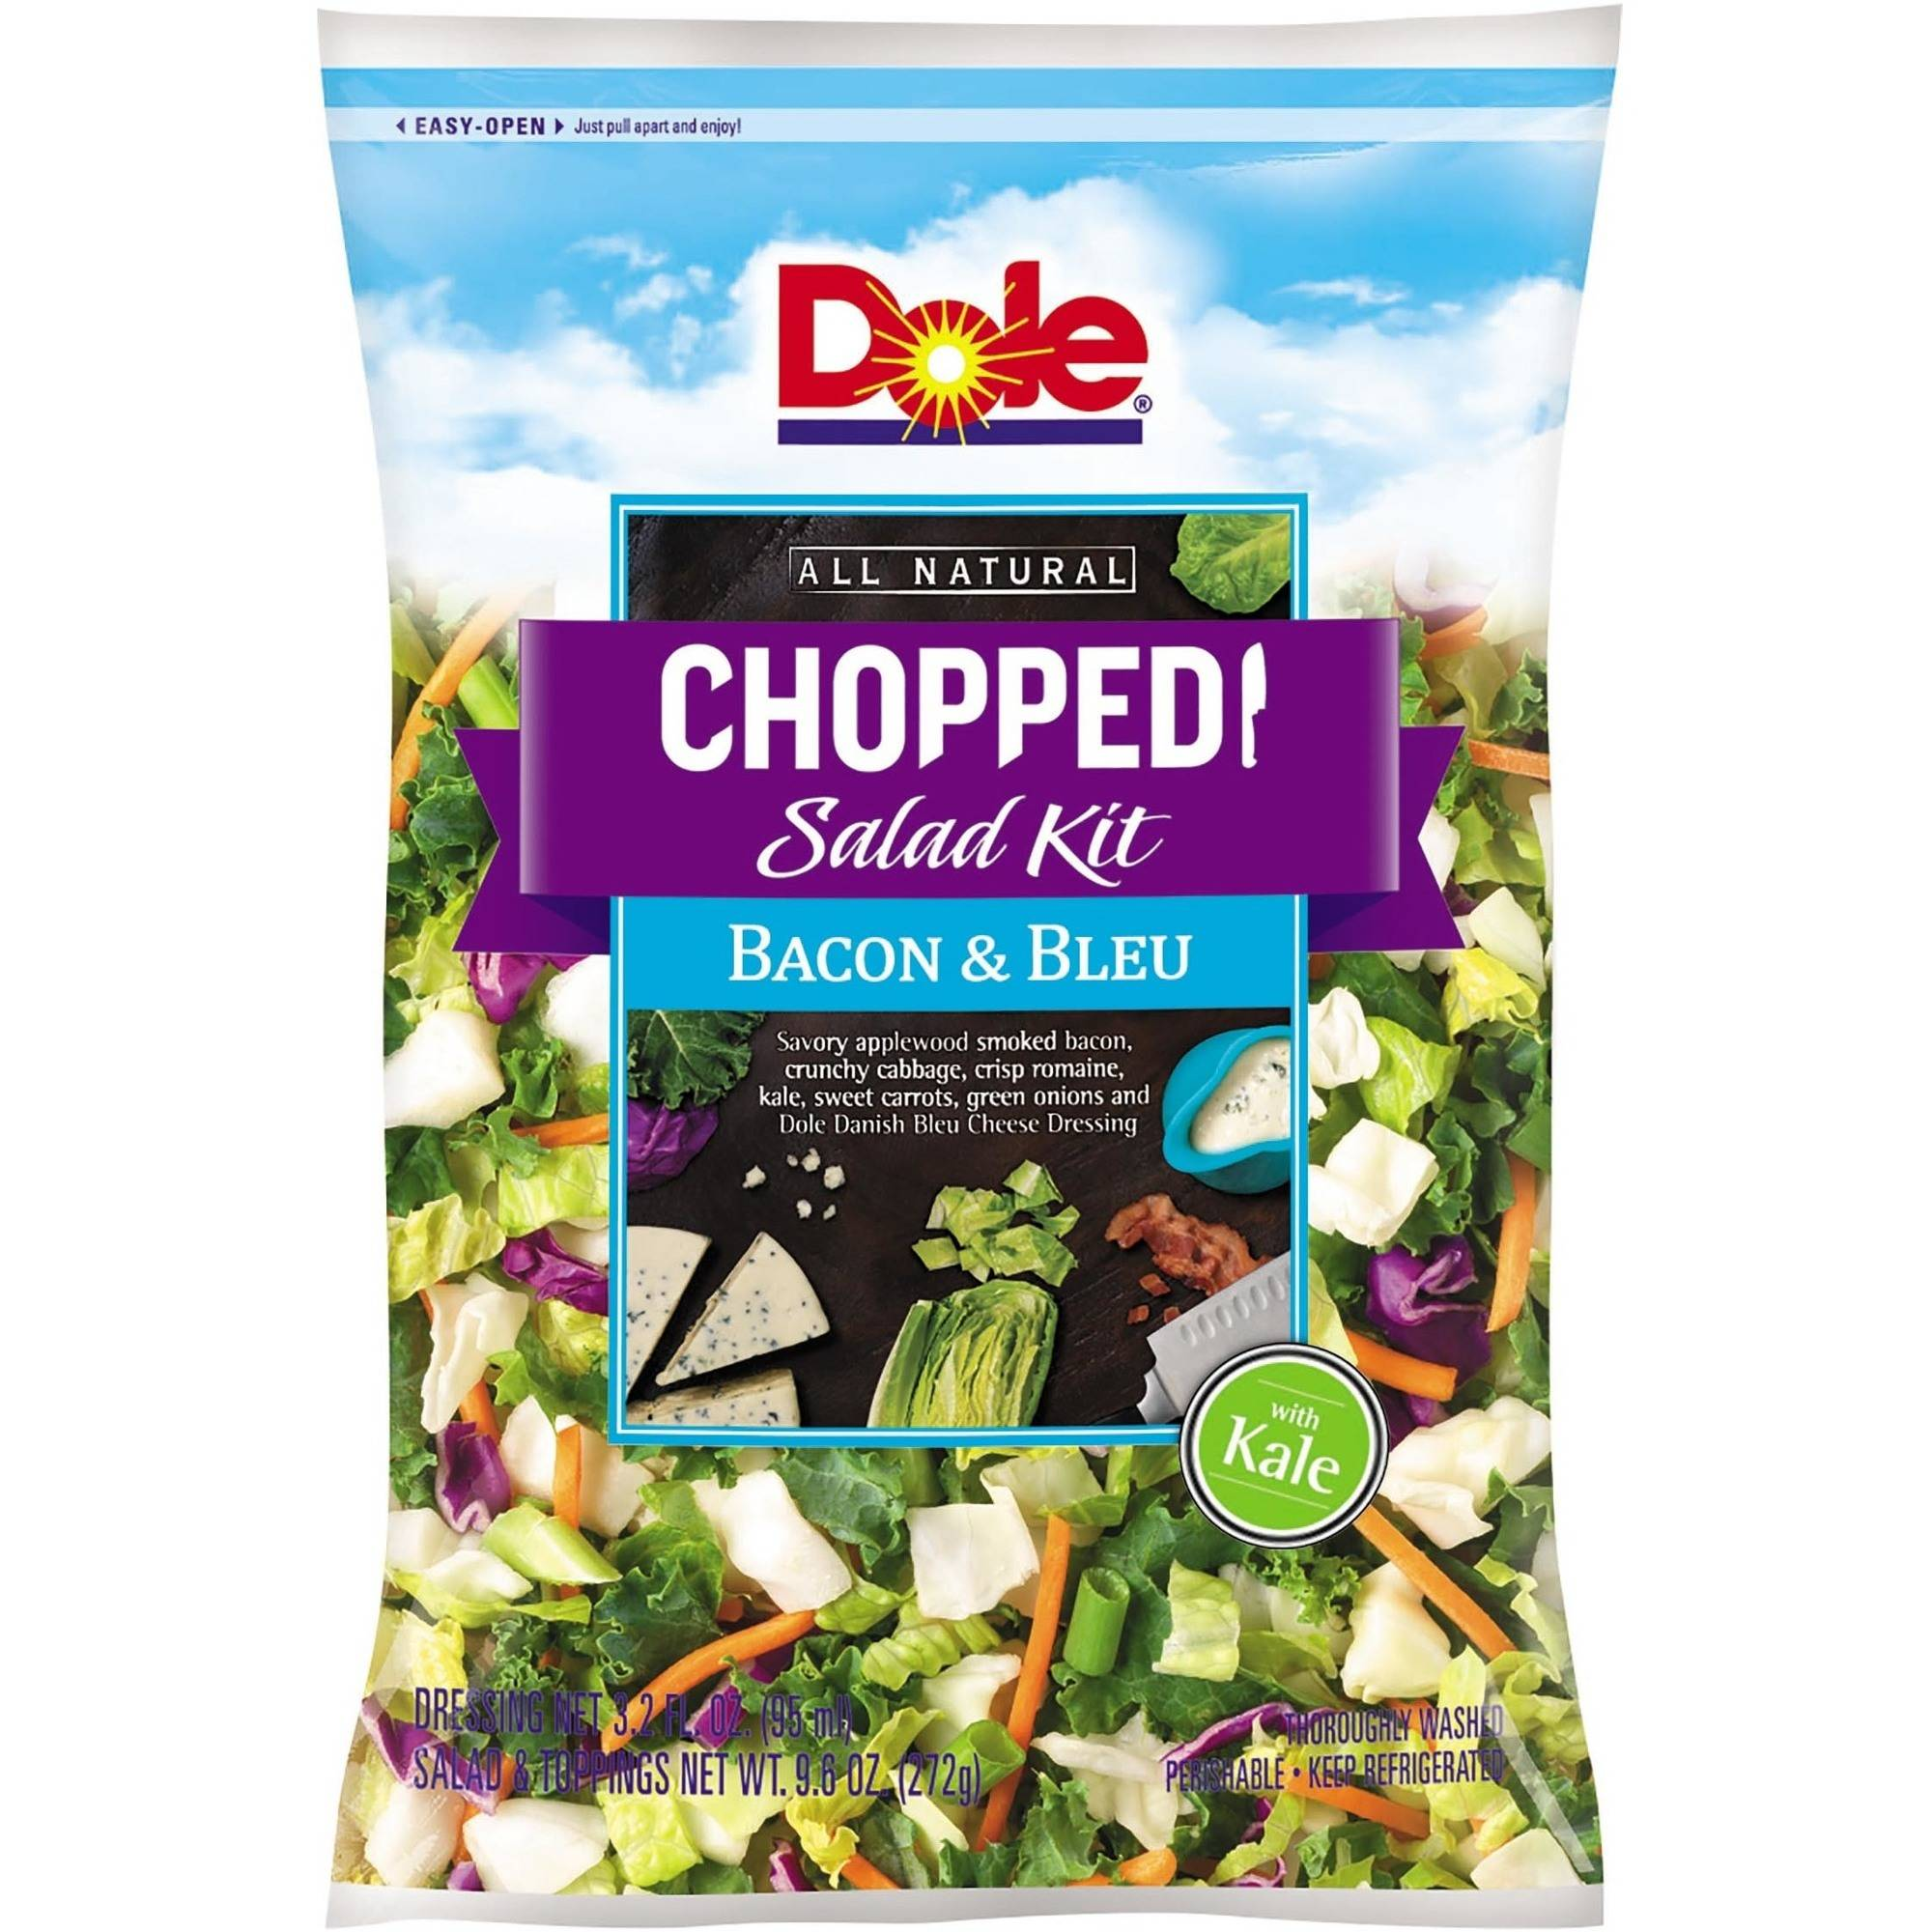 Dole Chopped Bacon & Blue Salad Kit, 2 pc